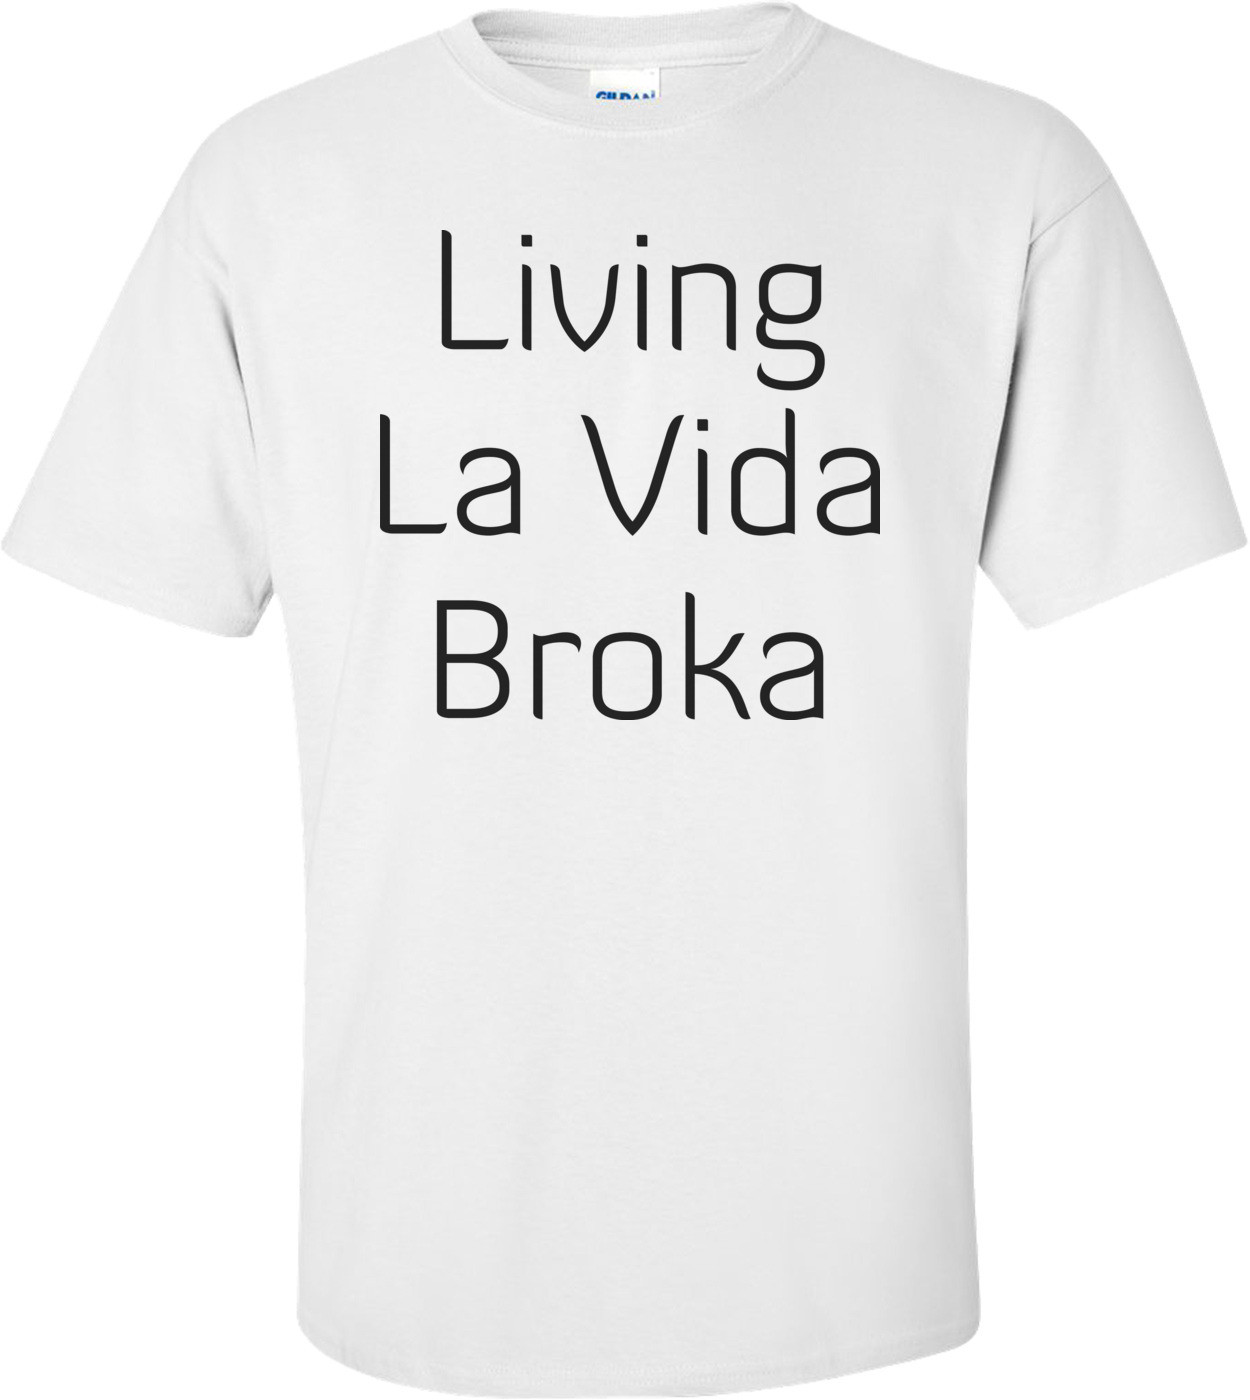 Living La Vida Broka Shirt